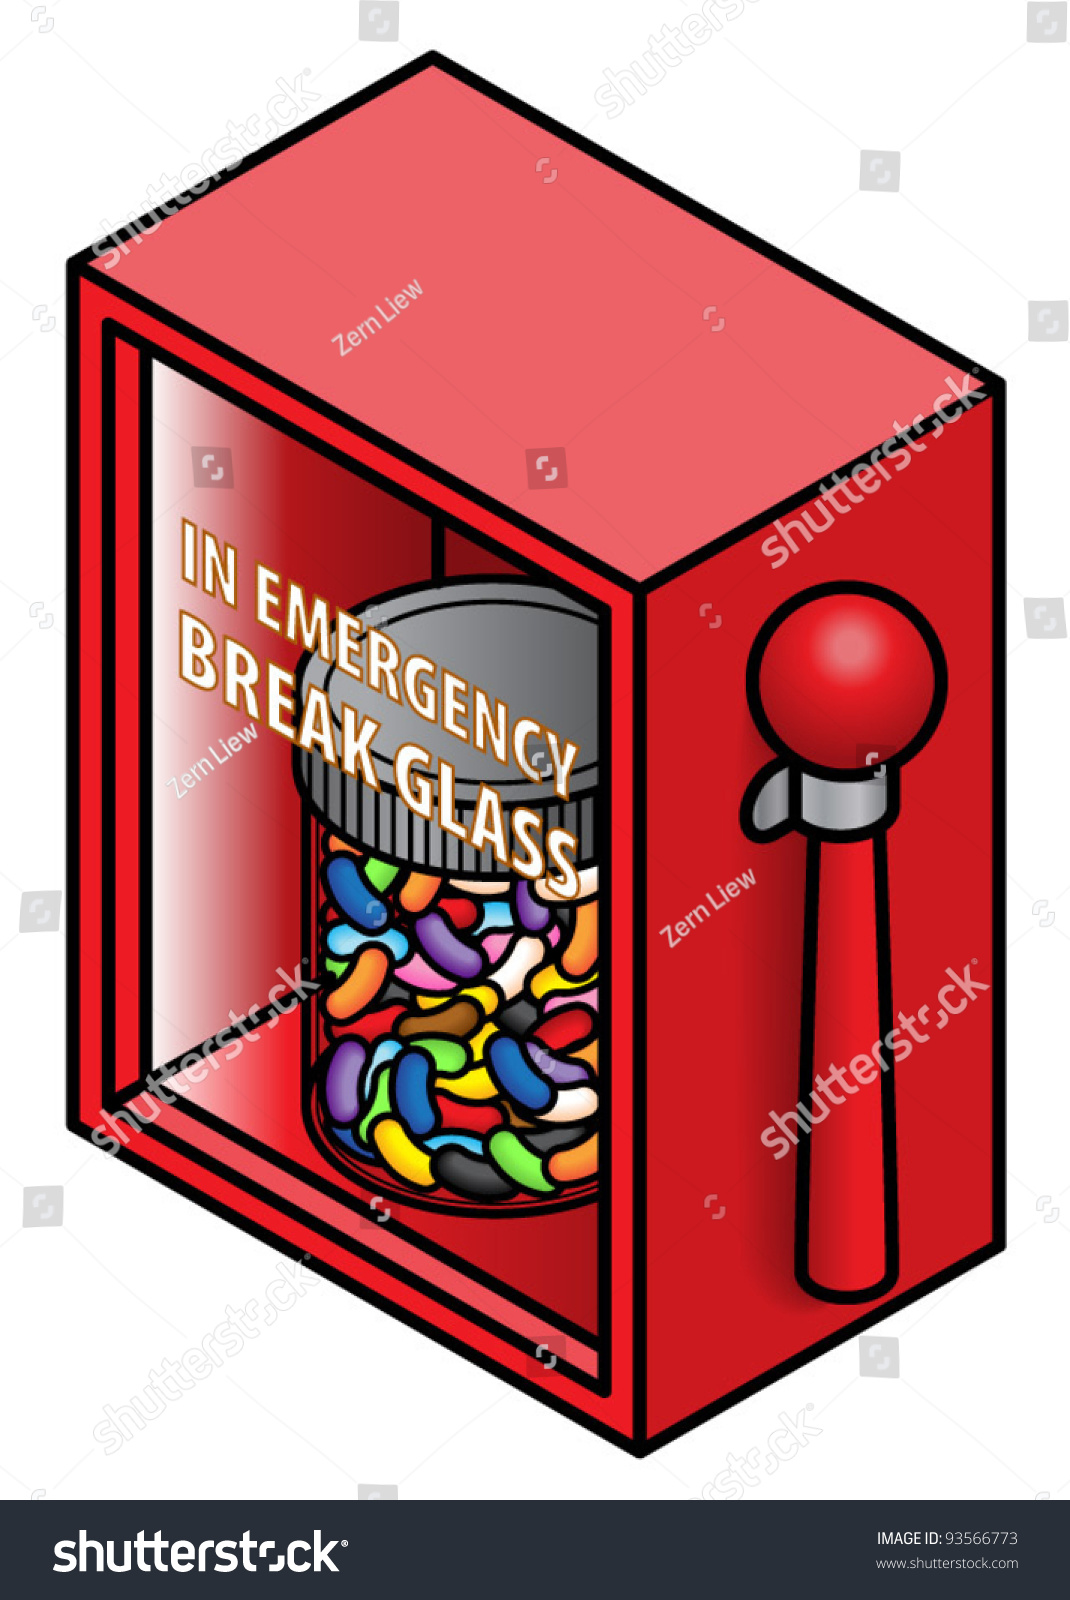 In Emergency Break Glass And Grab That Jar Of Yummy Jelly Beans Concept Candy Will Fix